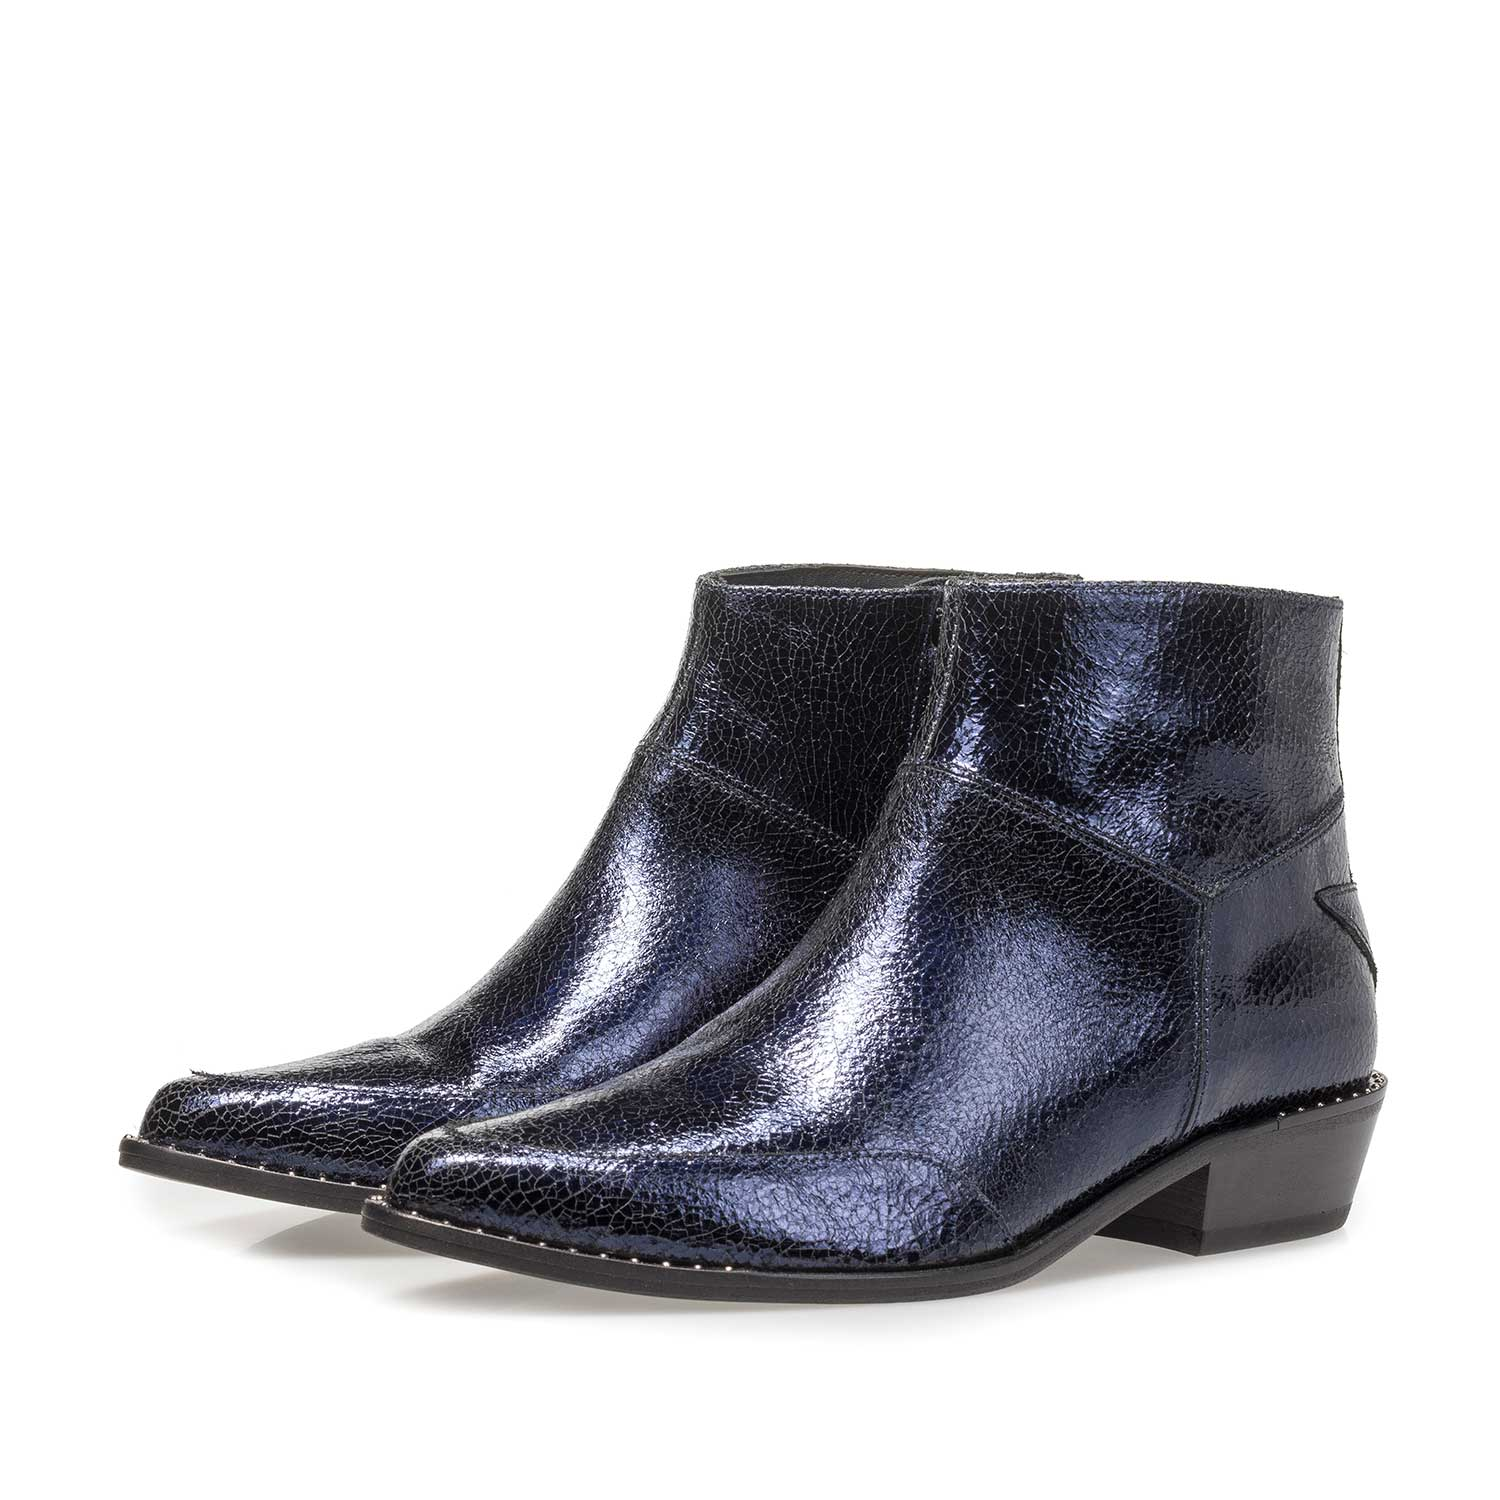 85625/02 - Dark blue leather ankle boots with metallic print